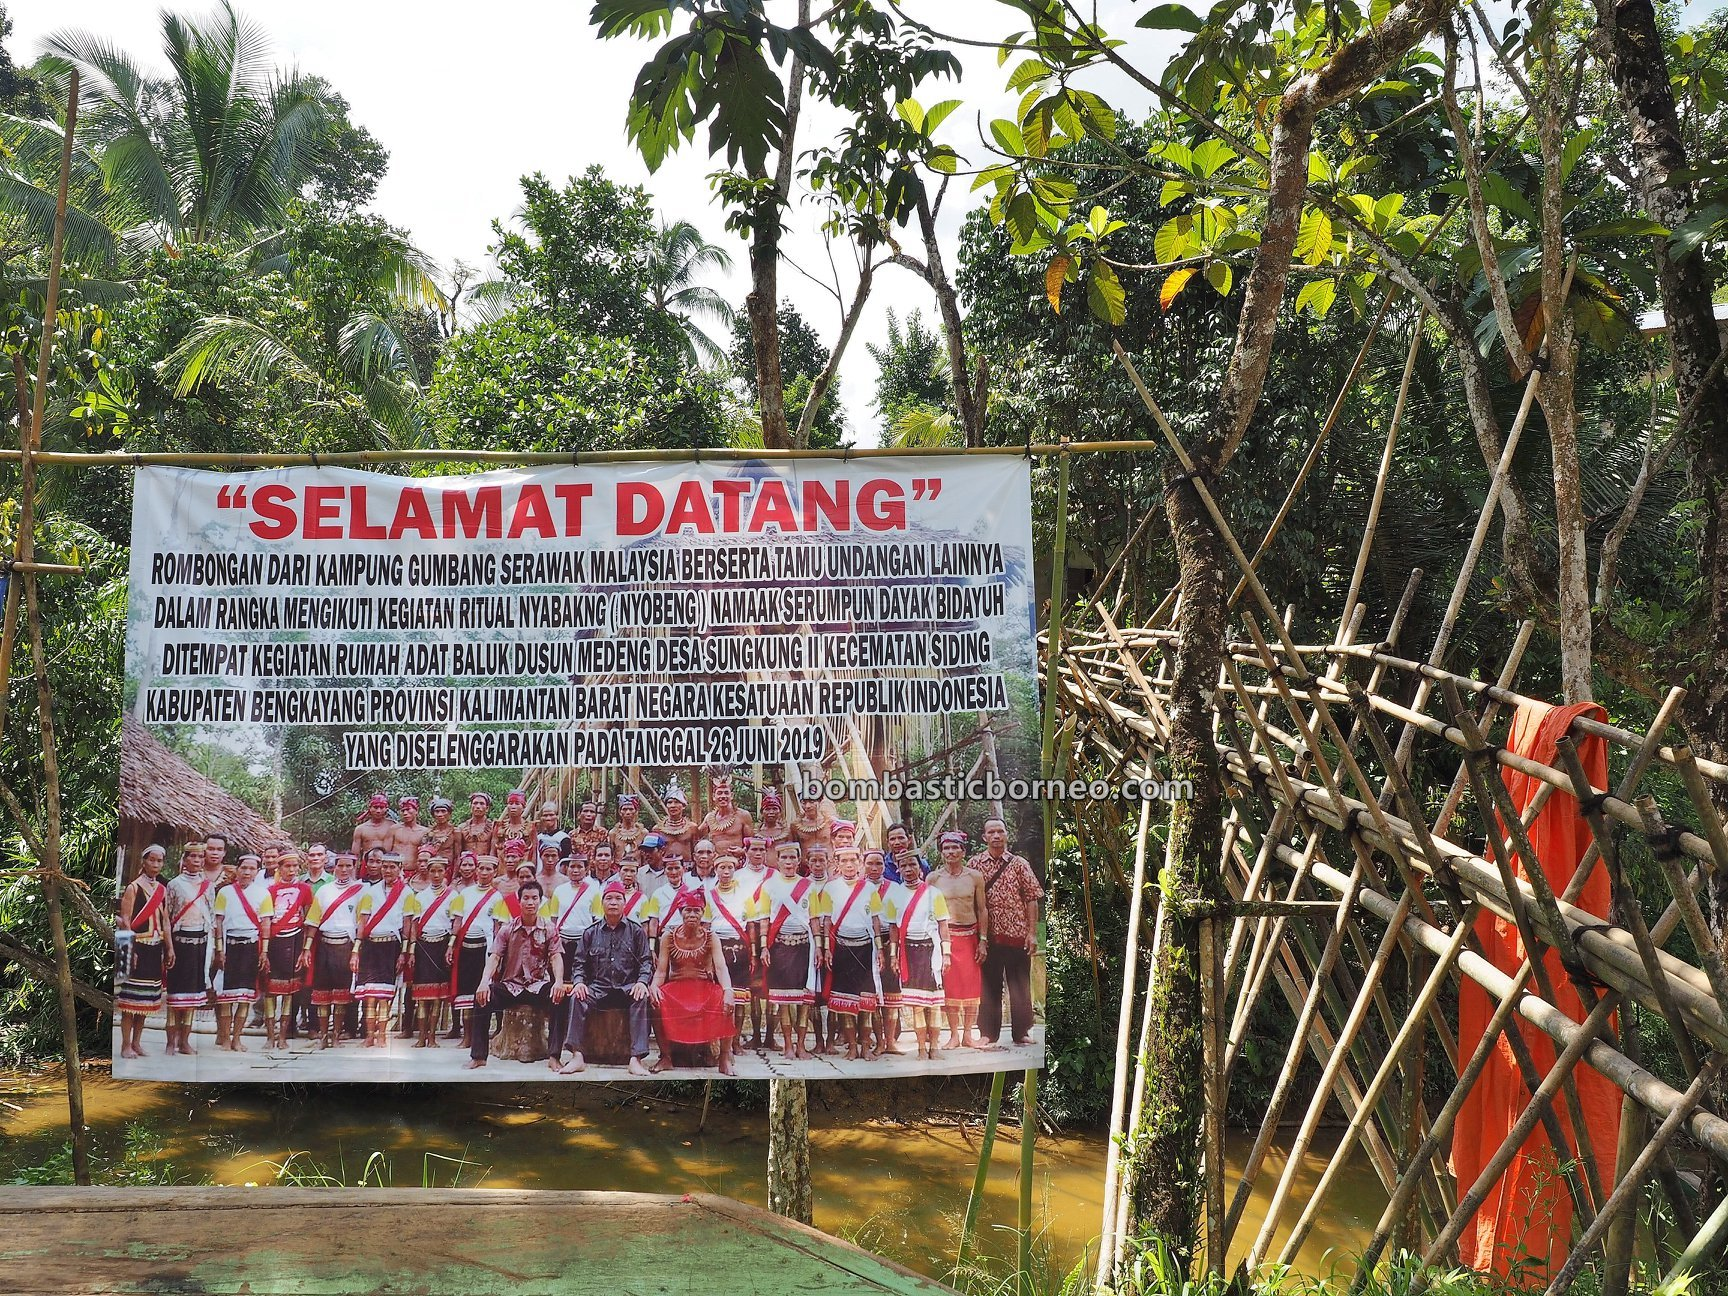 Sungkung Anep, traditional, indigenous, destination, West Kalimantan, Siding, Dayak Bidayuh, tribal, Gawai harvest festival, Tourism, Trans Border, Borneo, 探索婆罗洲游踪, 印尼达雅丰收节日, 西加里曼丹孟加映